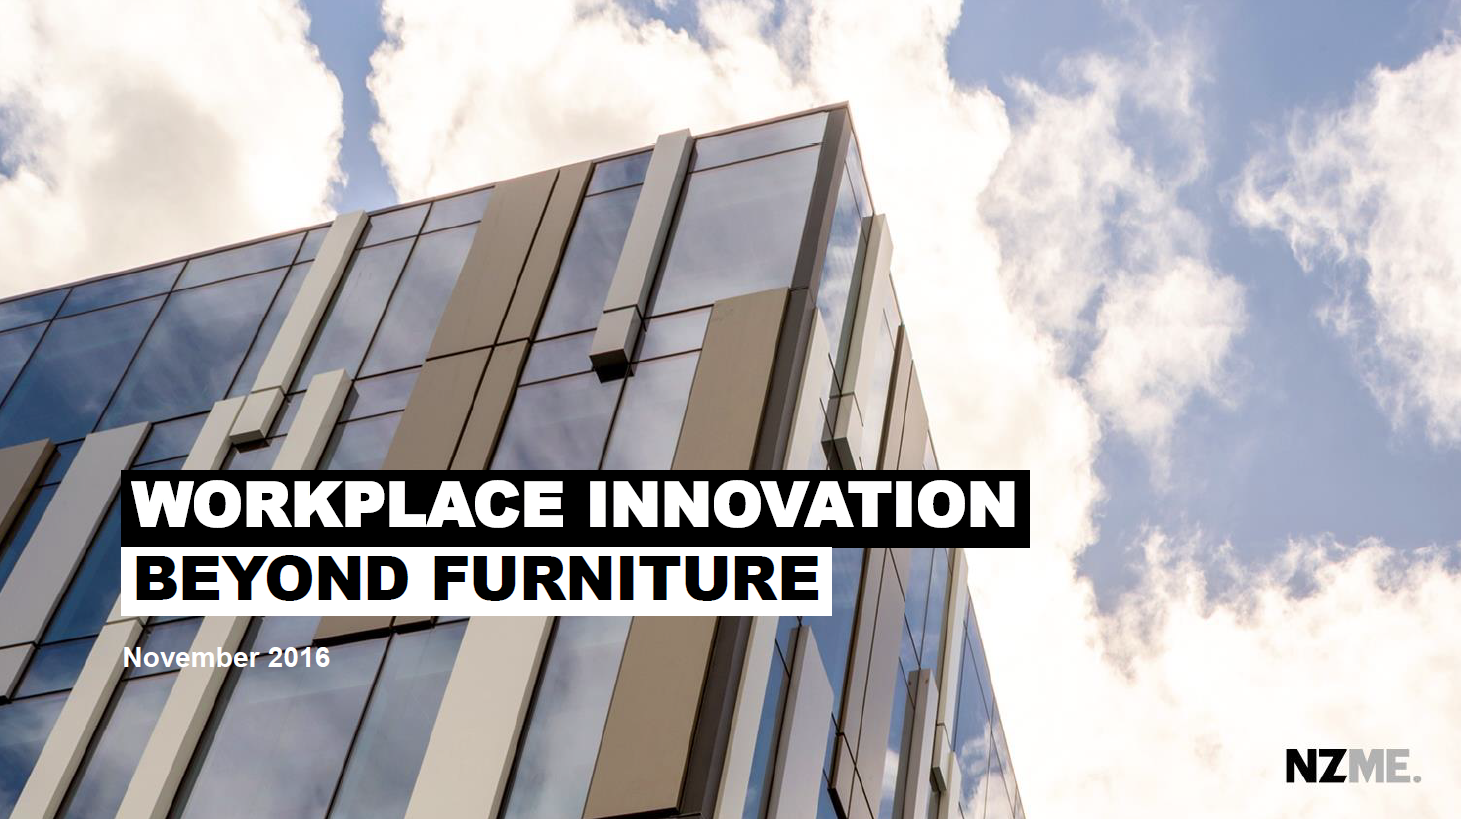 Beyond furniture – What workplace innovation and planning actually involves